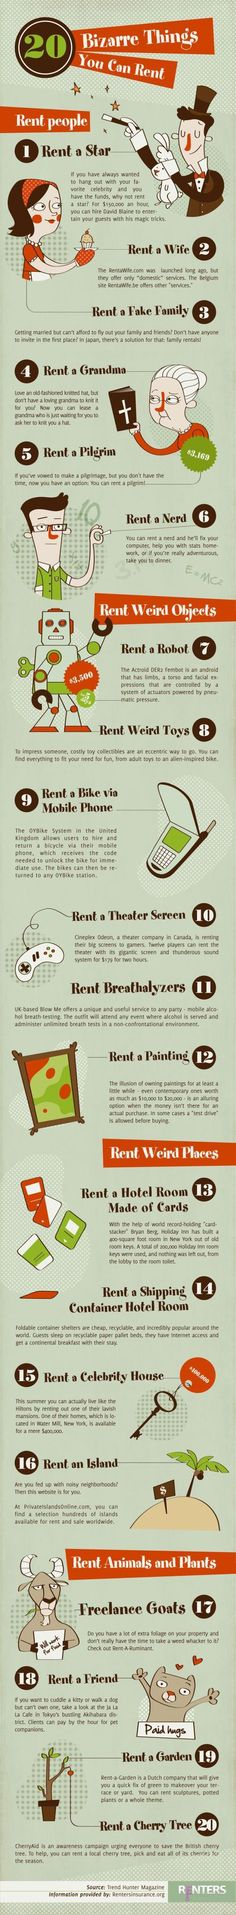 20 strange things you can rent